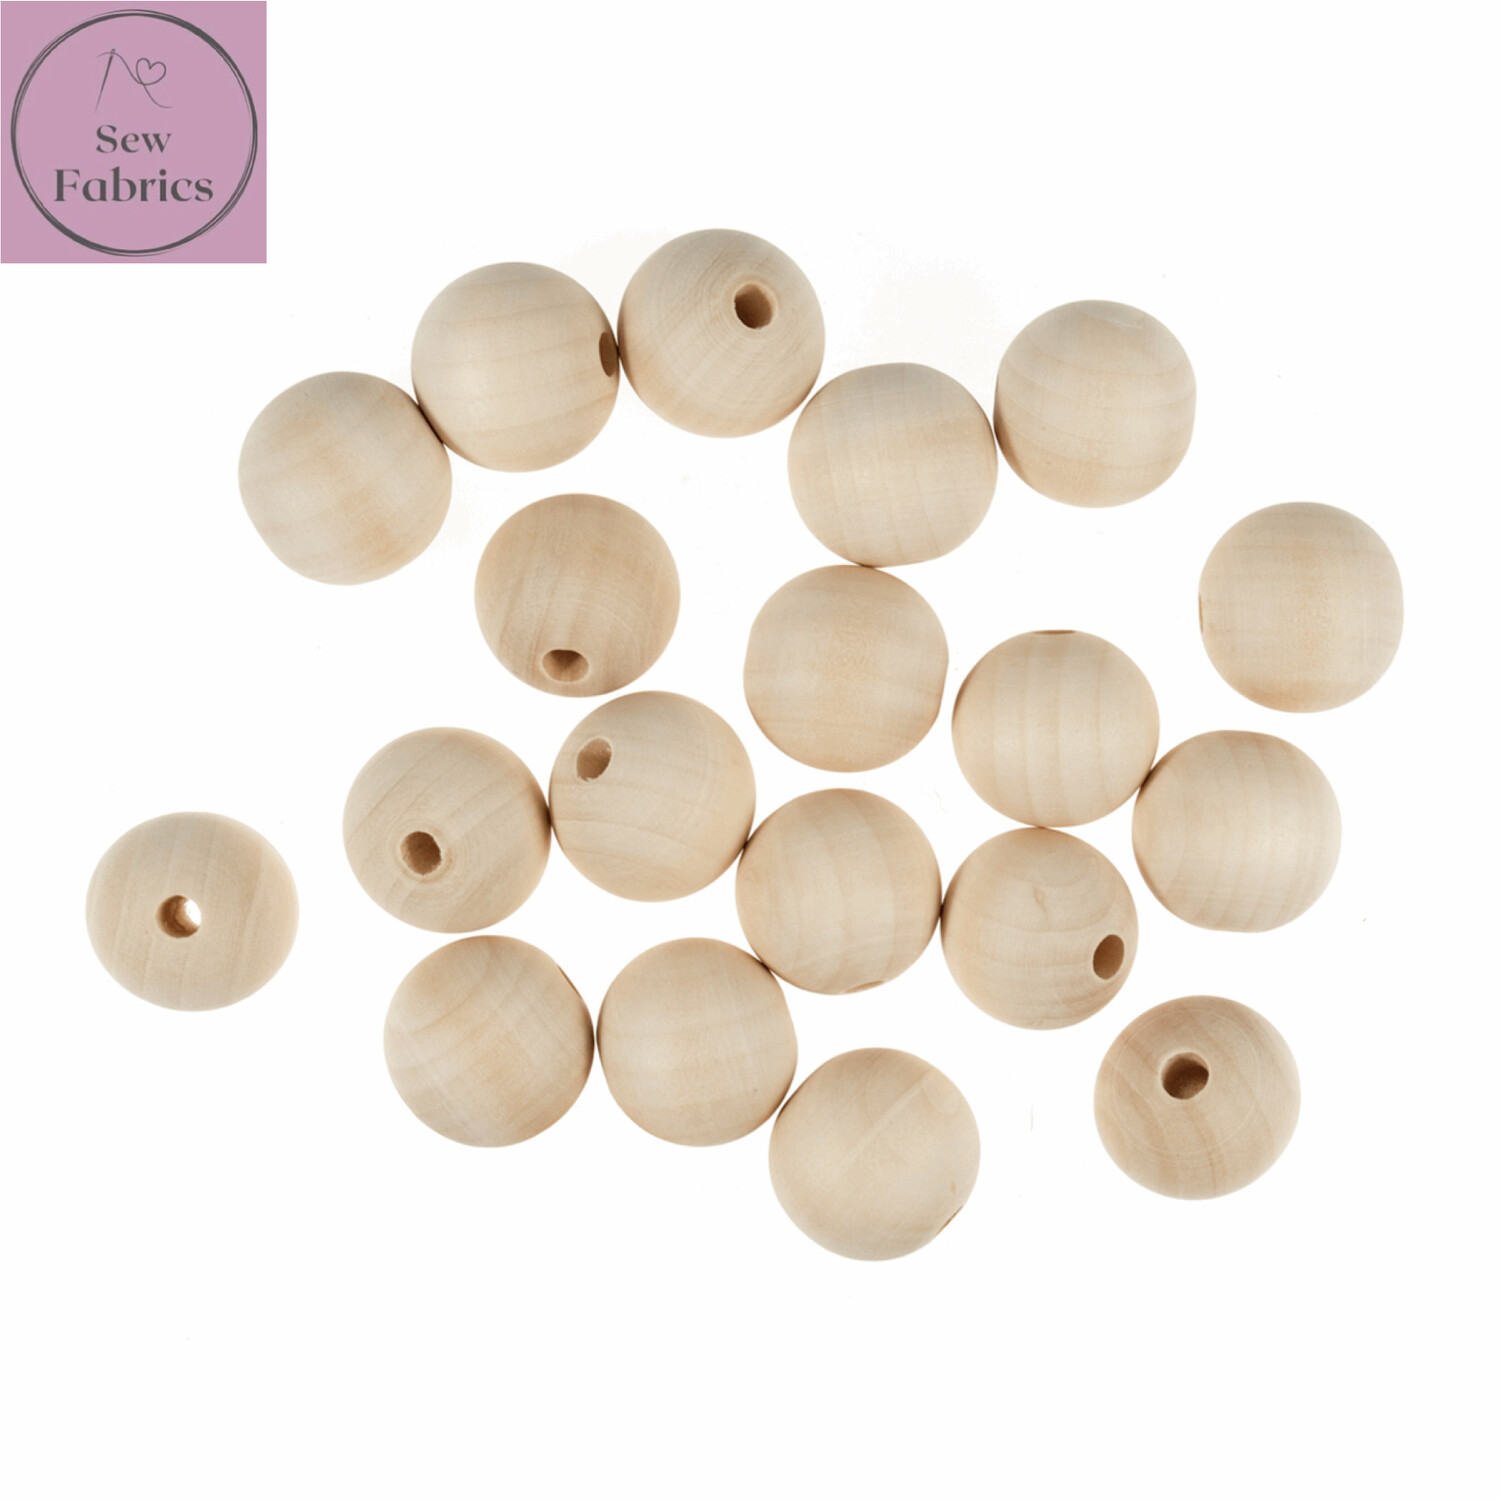 Pack of 5 x 30mm Round Trimits Wooden Beech Beads with 5mm Centre Hole, Macrame, Decorations